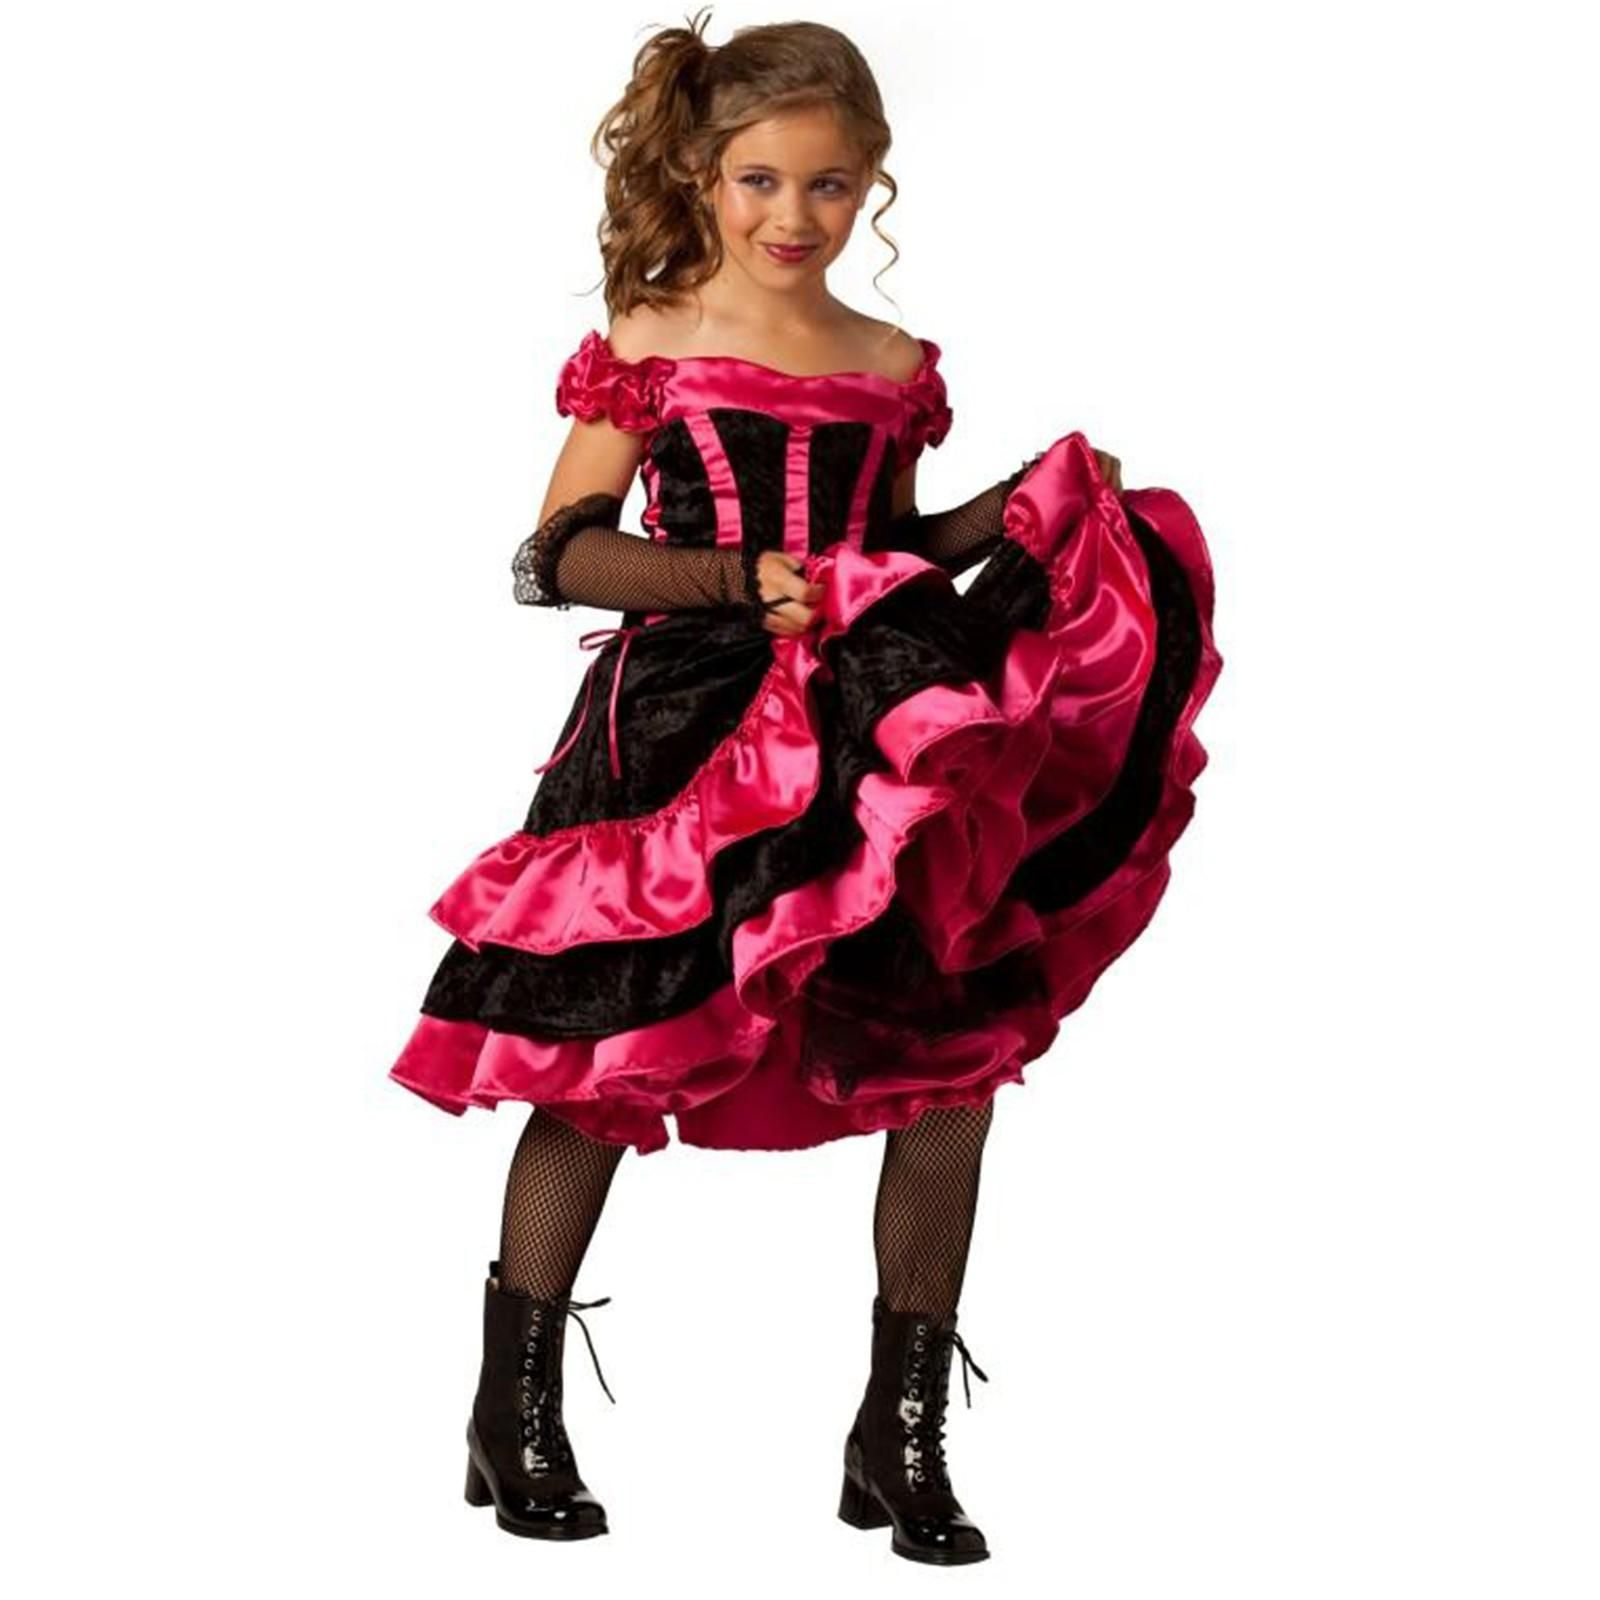 Home ladies costumes rodeo gal costume - Halloween Costumes Can Can Dancer Child Costume